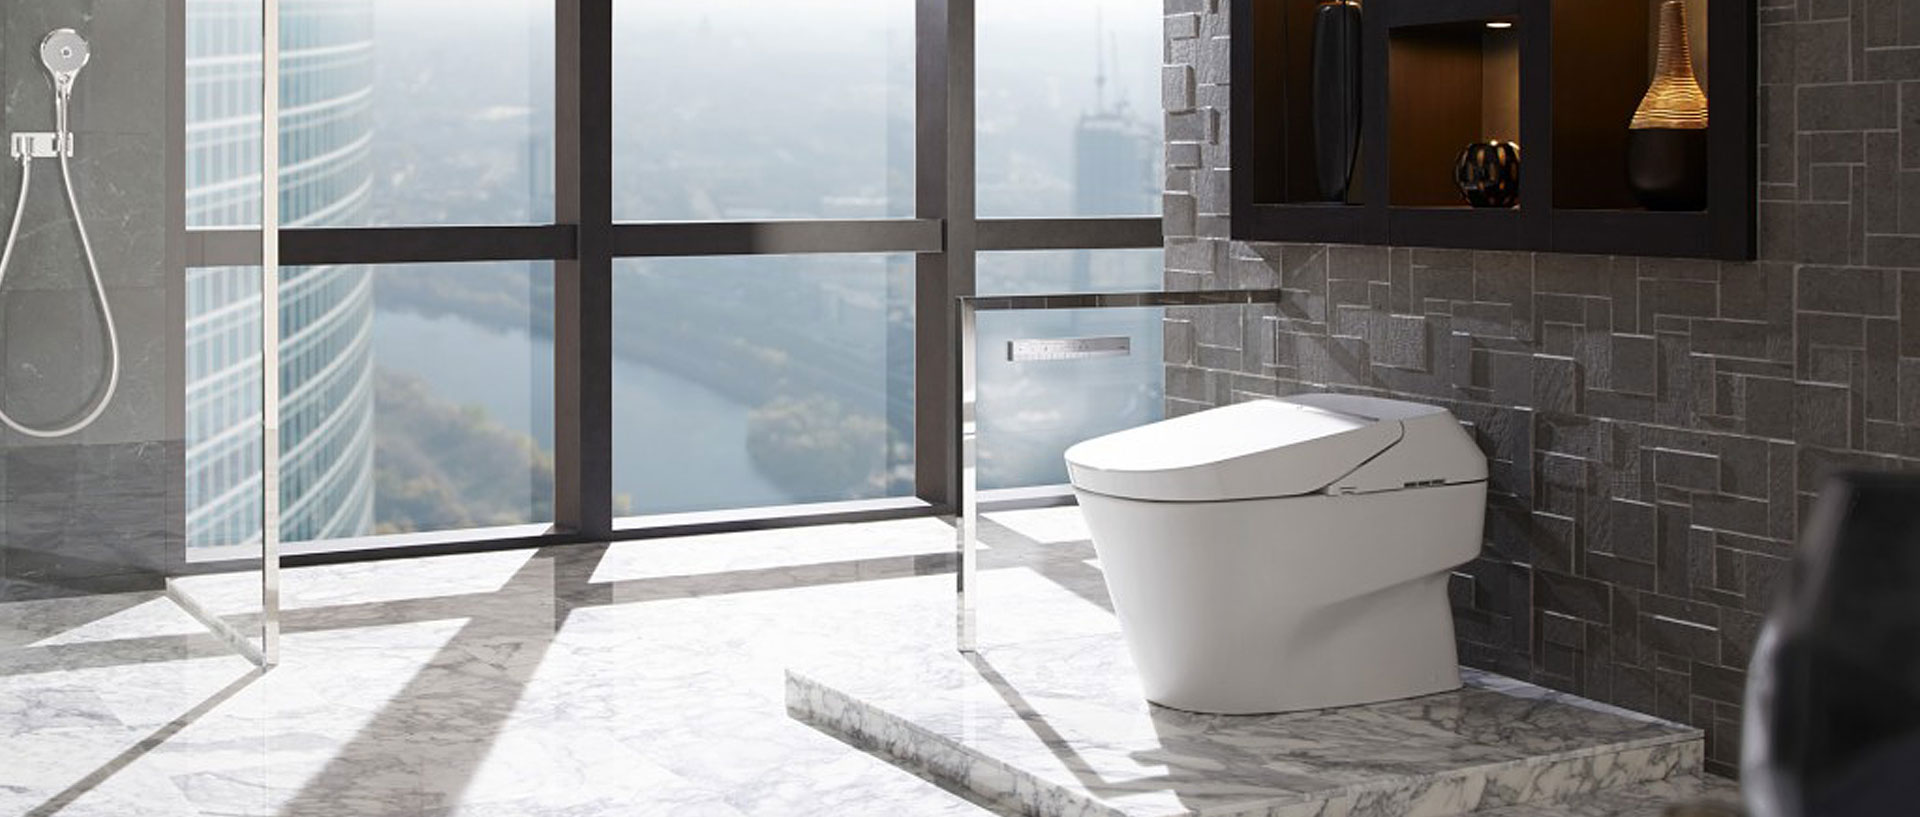 Modern Toilet Gets A High Tech Makeover Consumer Reports